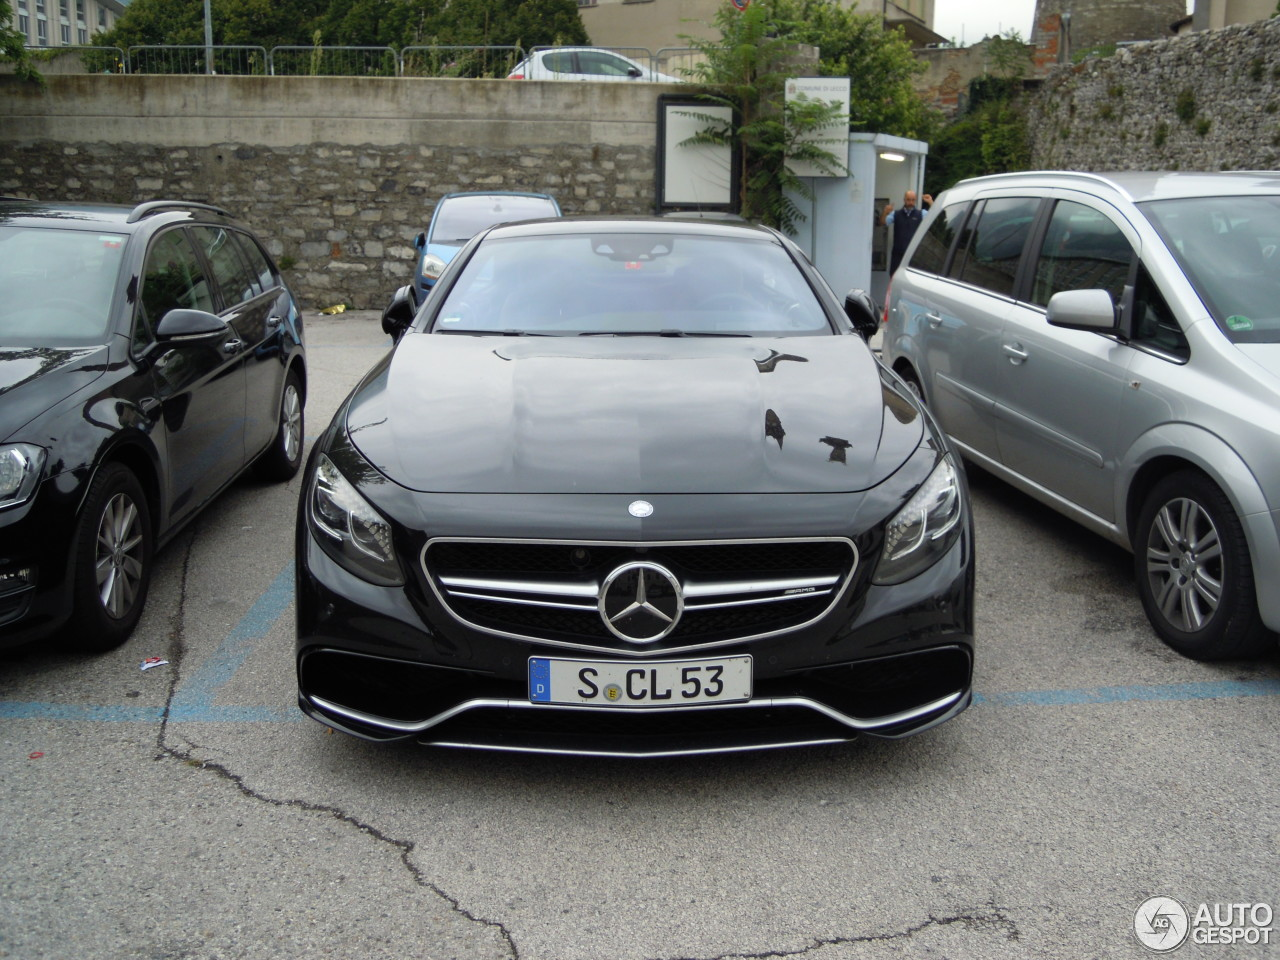 Mercedes benz s 63 amg coup c217 26 august 2014 for Mercedes benz s coupe 2014